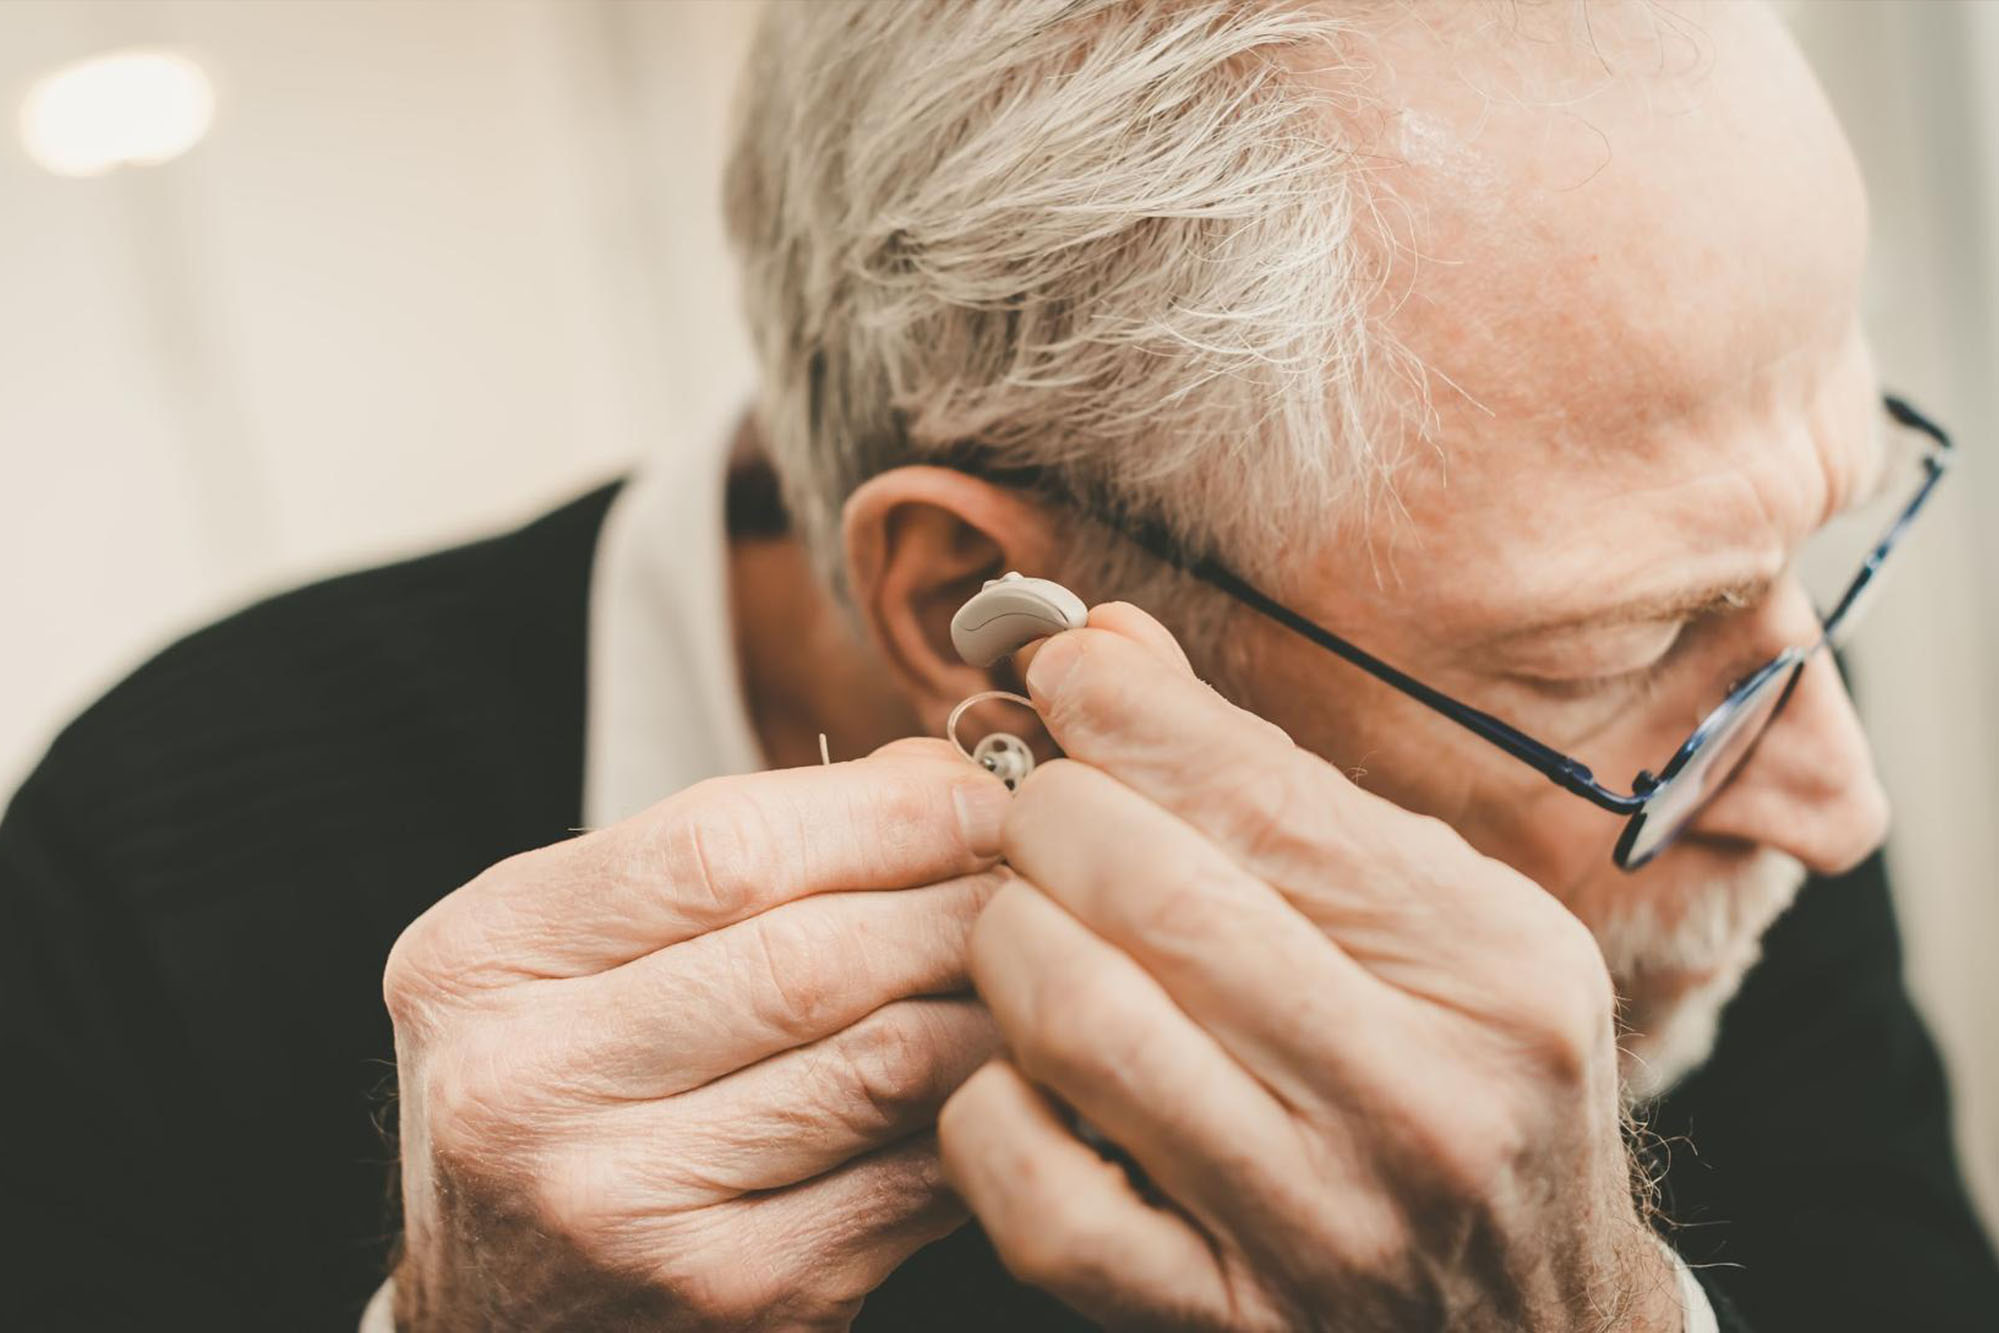 What in-the-ear hearing aids perform best?